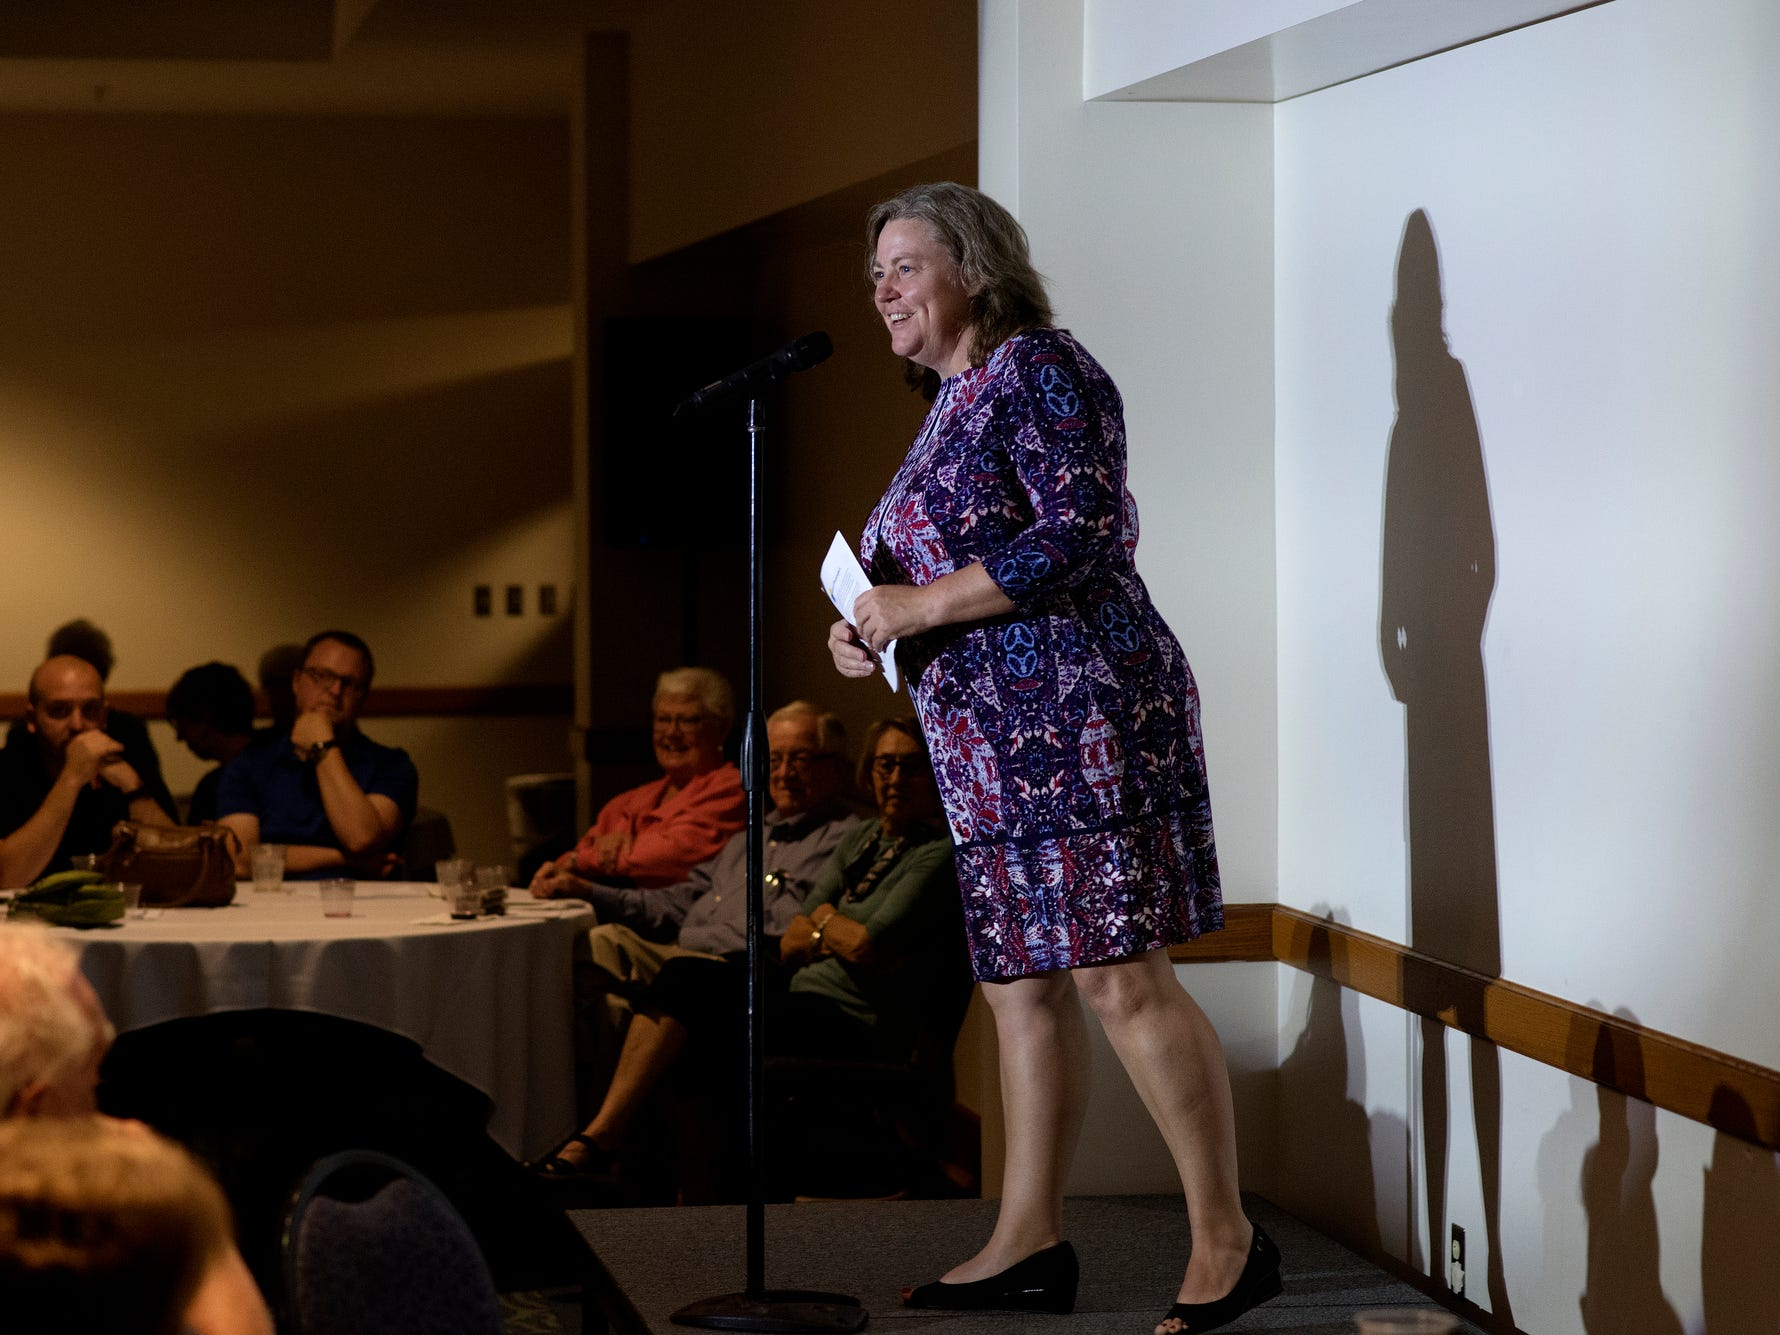 Stephanie Angel, LSJ executive editor, introduces speaker Katie Stanulis during the Lansing Storytellers Project: 'Are We There Yet?' event on Tuesday, Sept. 18, 2018, at the Hannah Community Center in East Lansing.